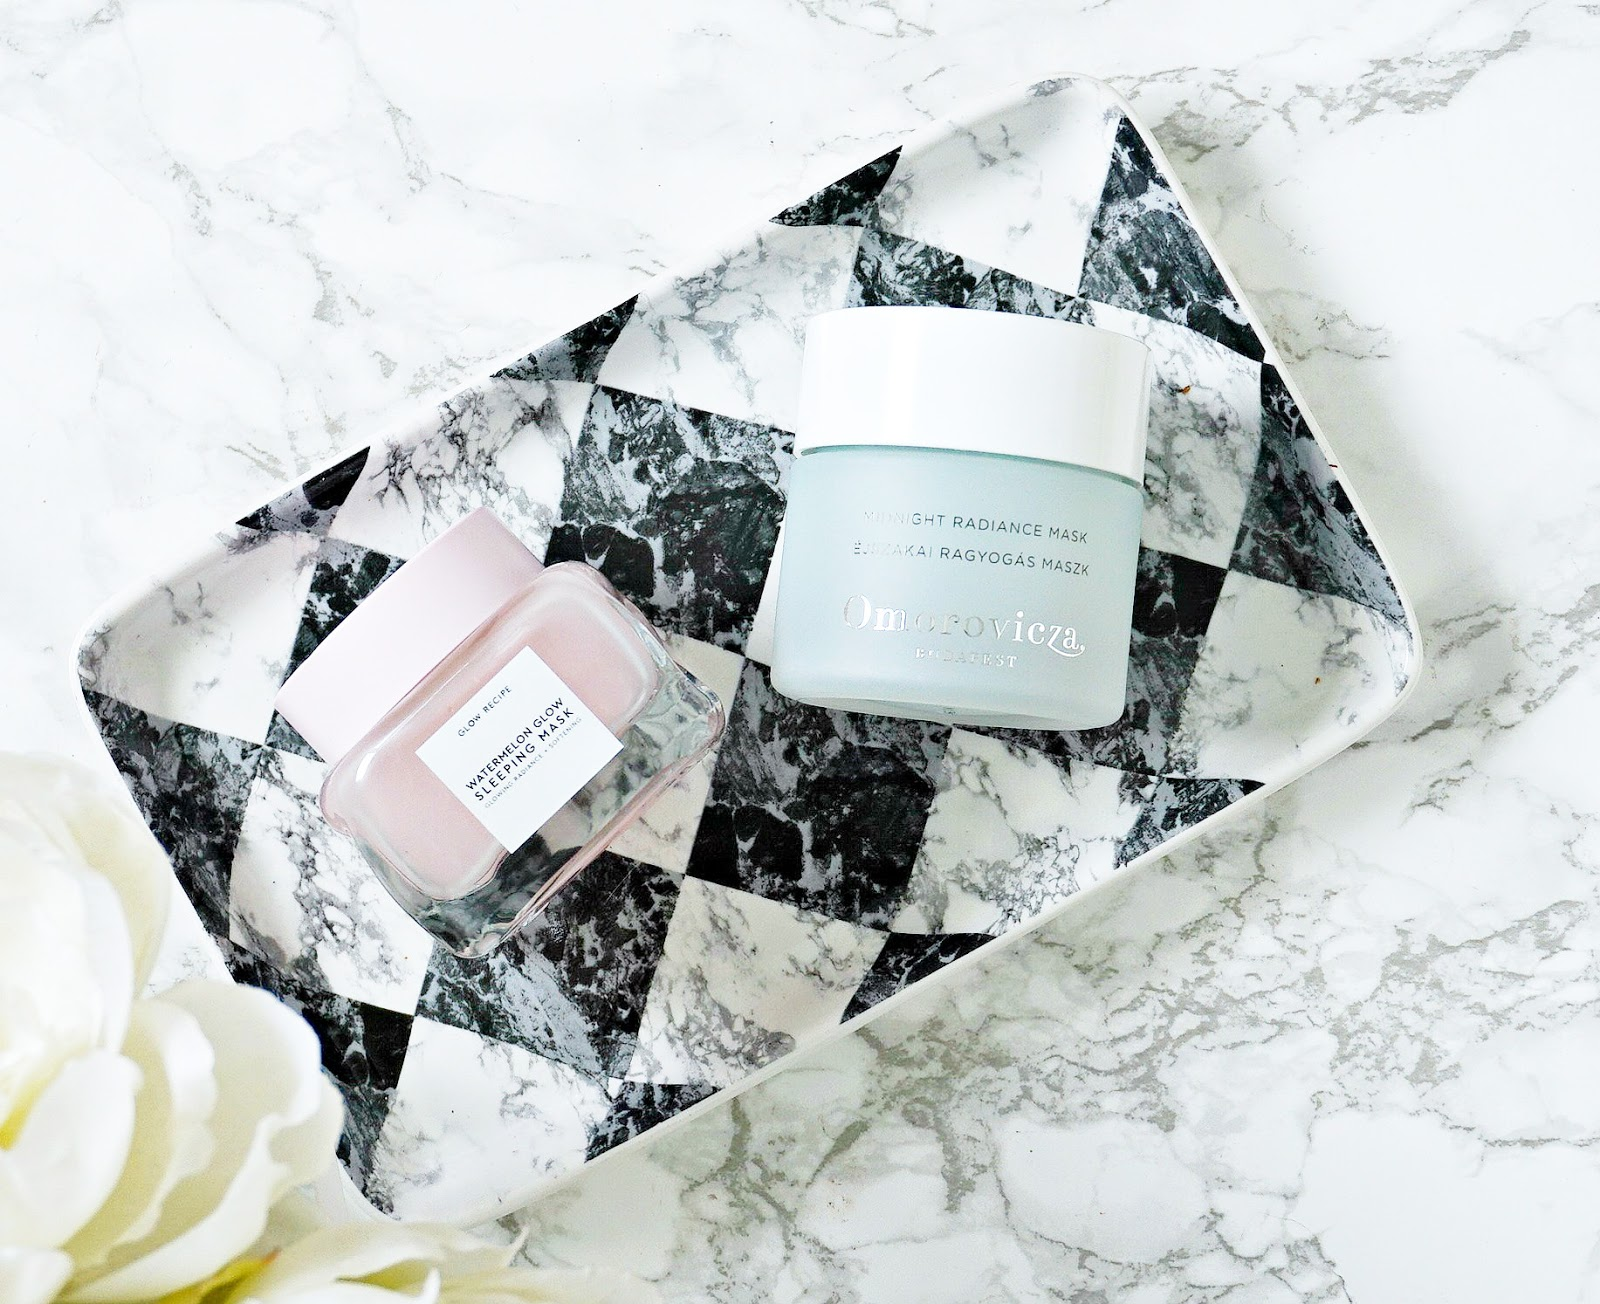 Glow Recipe Watermelon Sleeping Mask, Omorovicza Midnight Radiance Mask